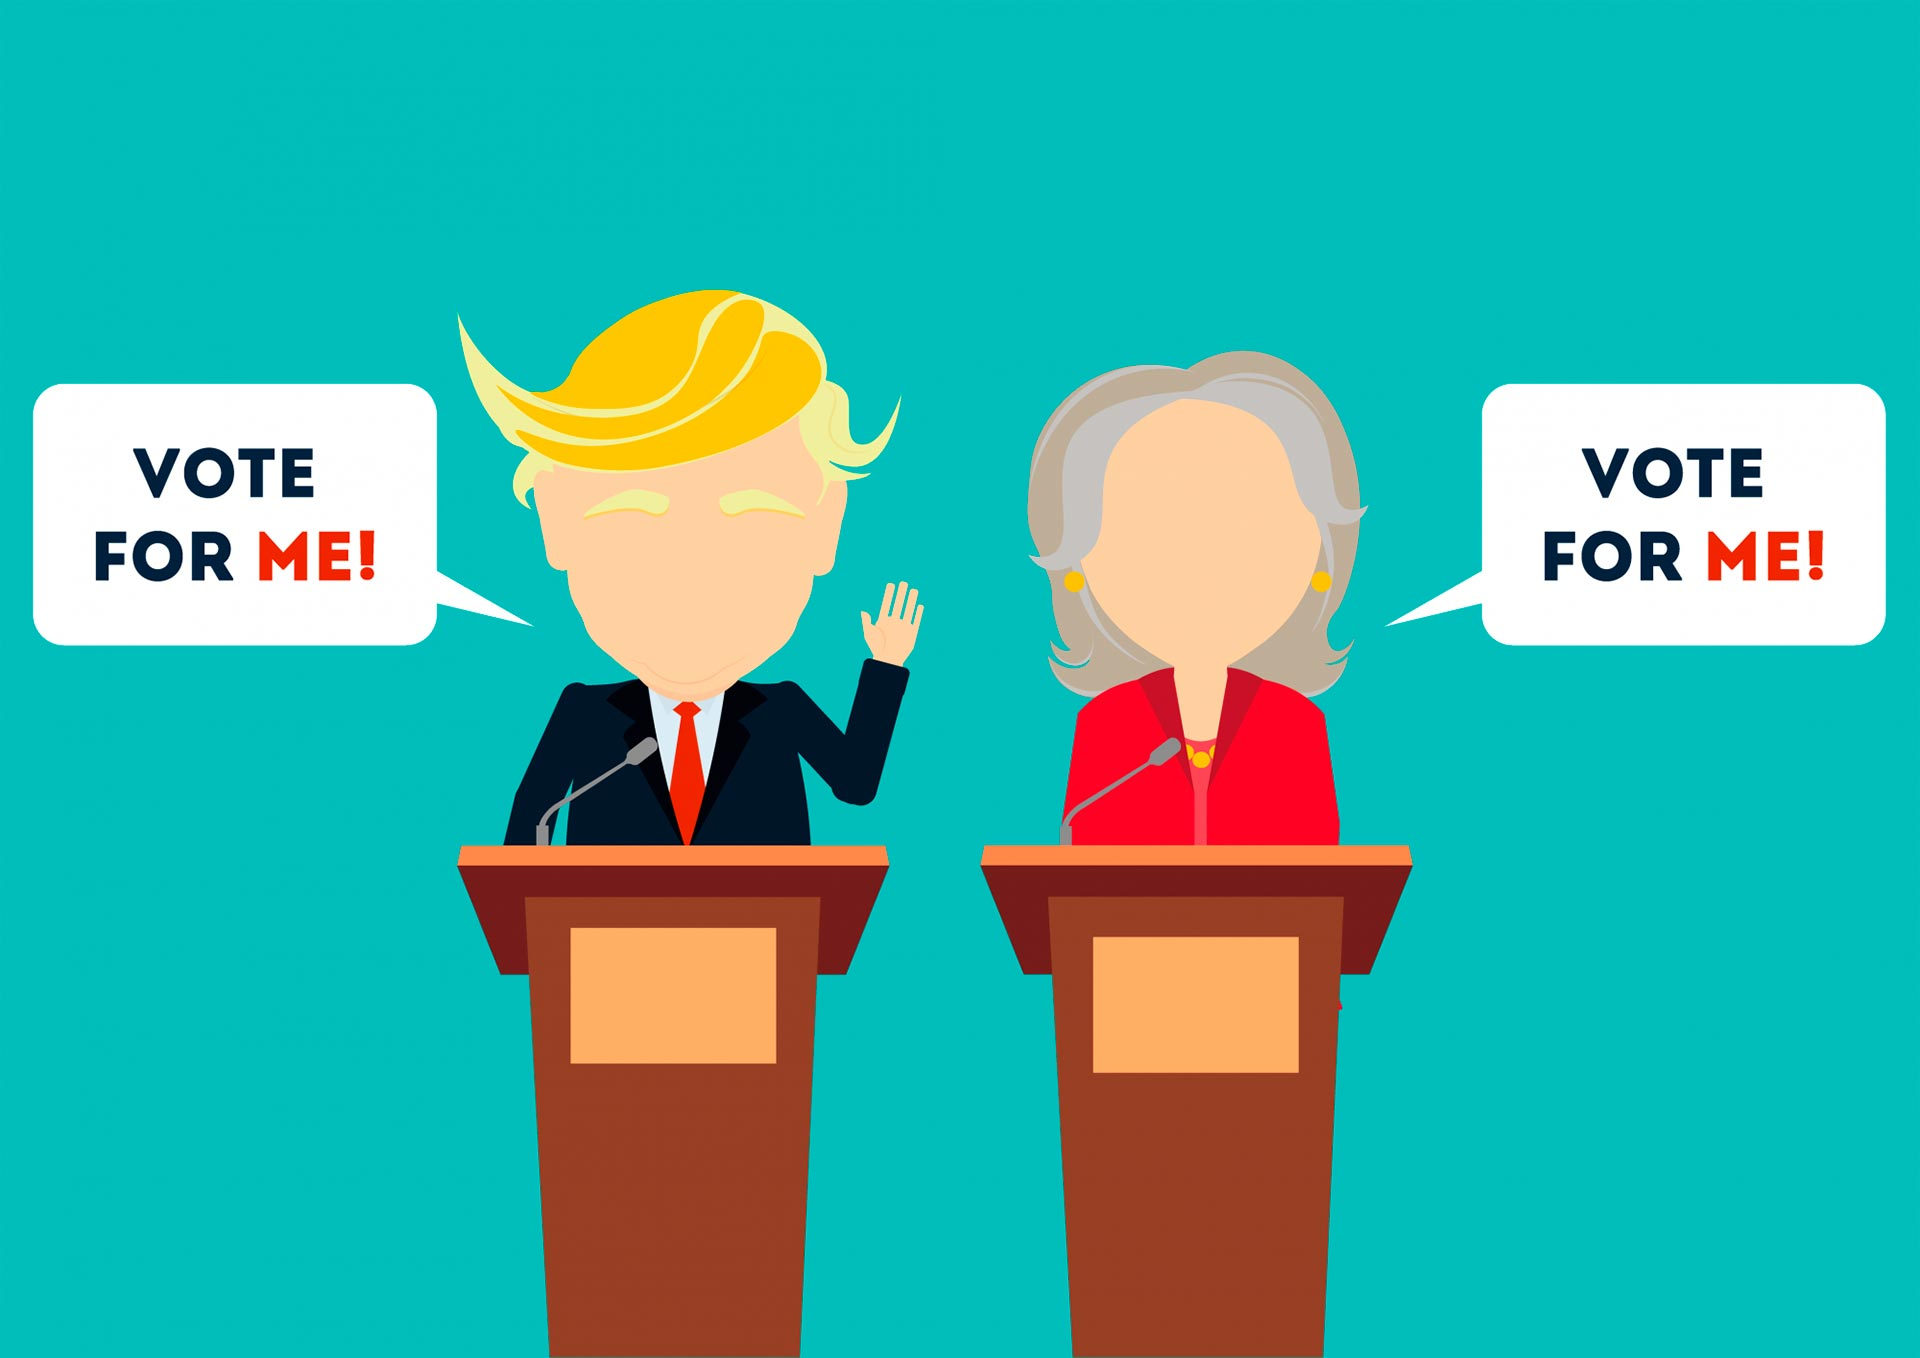 Animated depiction of Donald Trump and Hilary Clinton asking for Irish votes